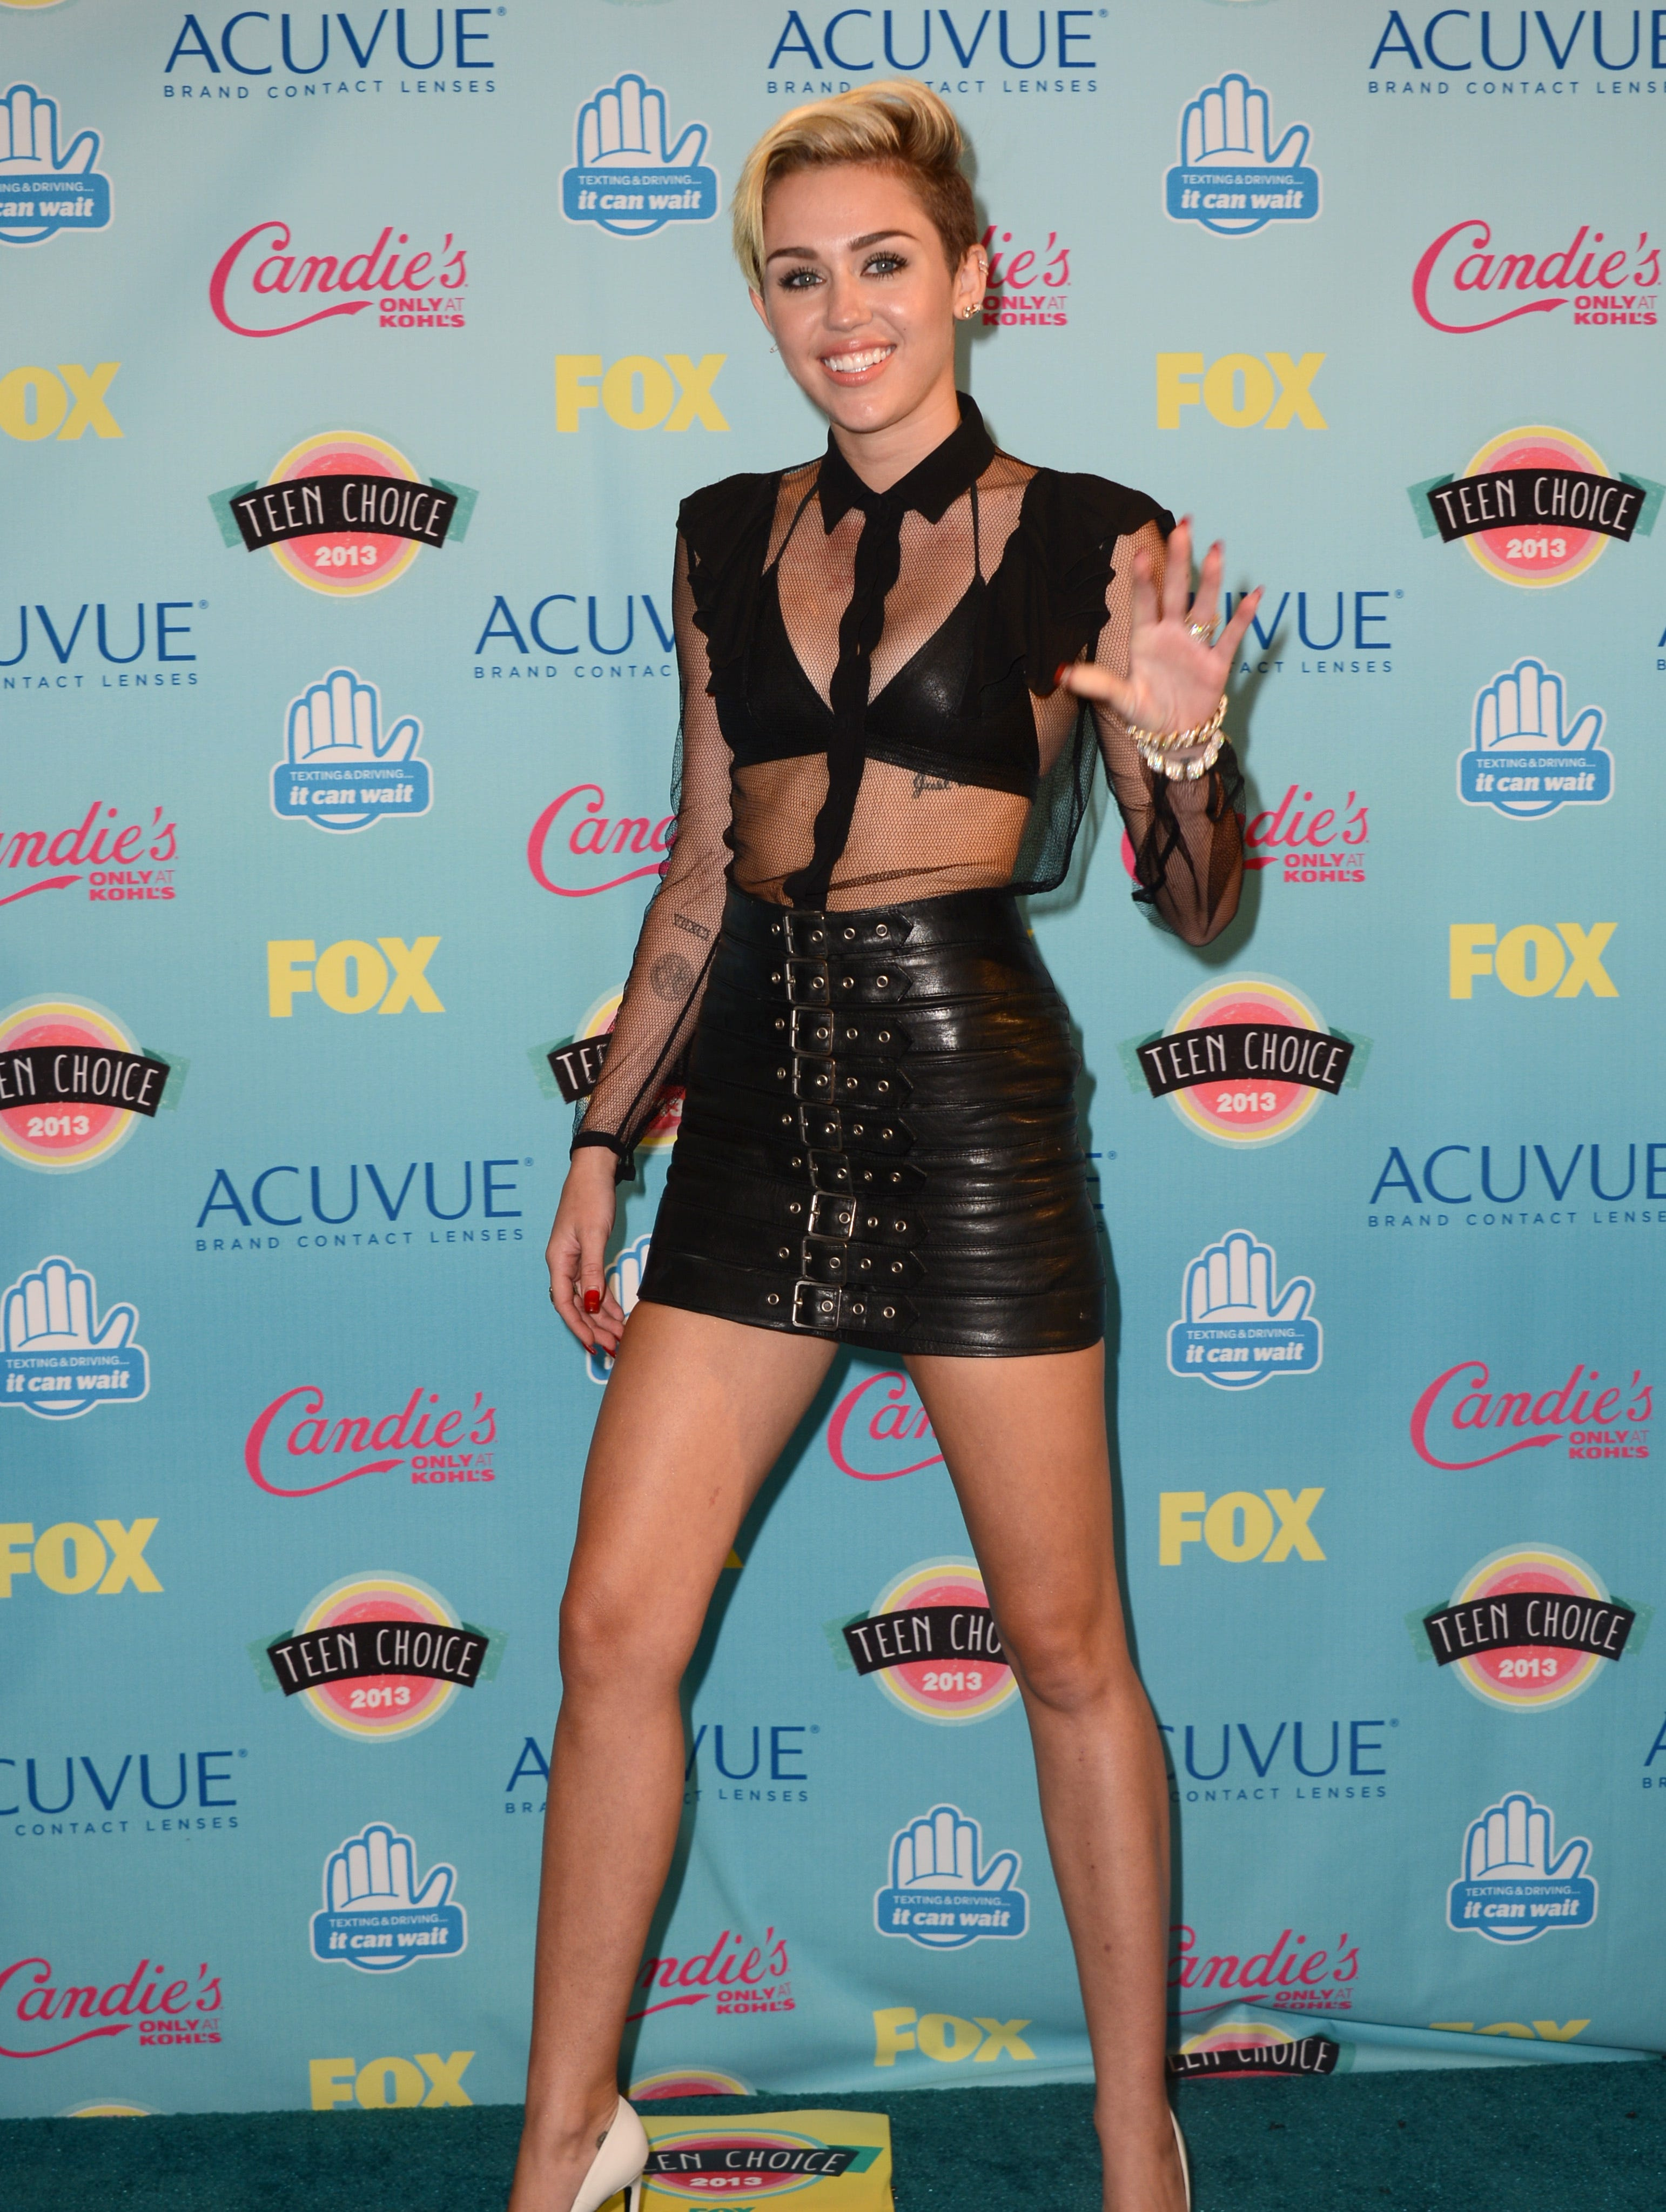 Miley Cyrus Secretly Tired Of Her Short Hair